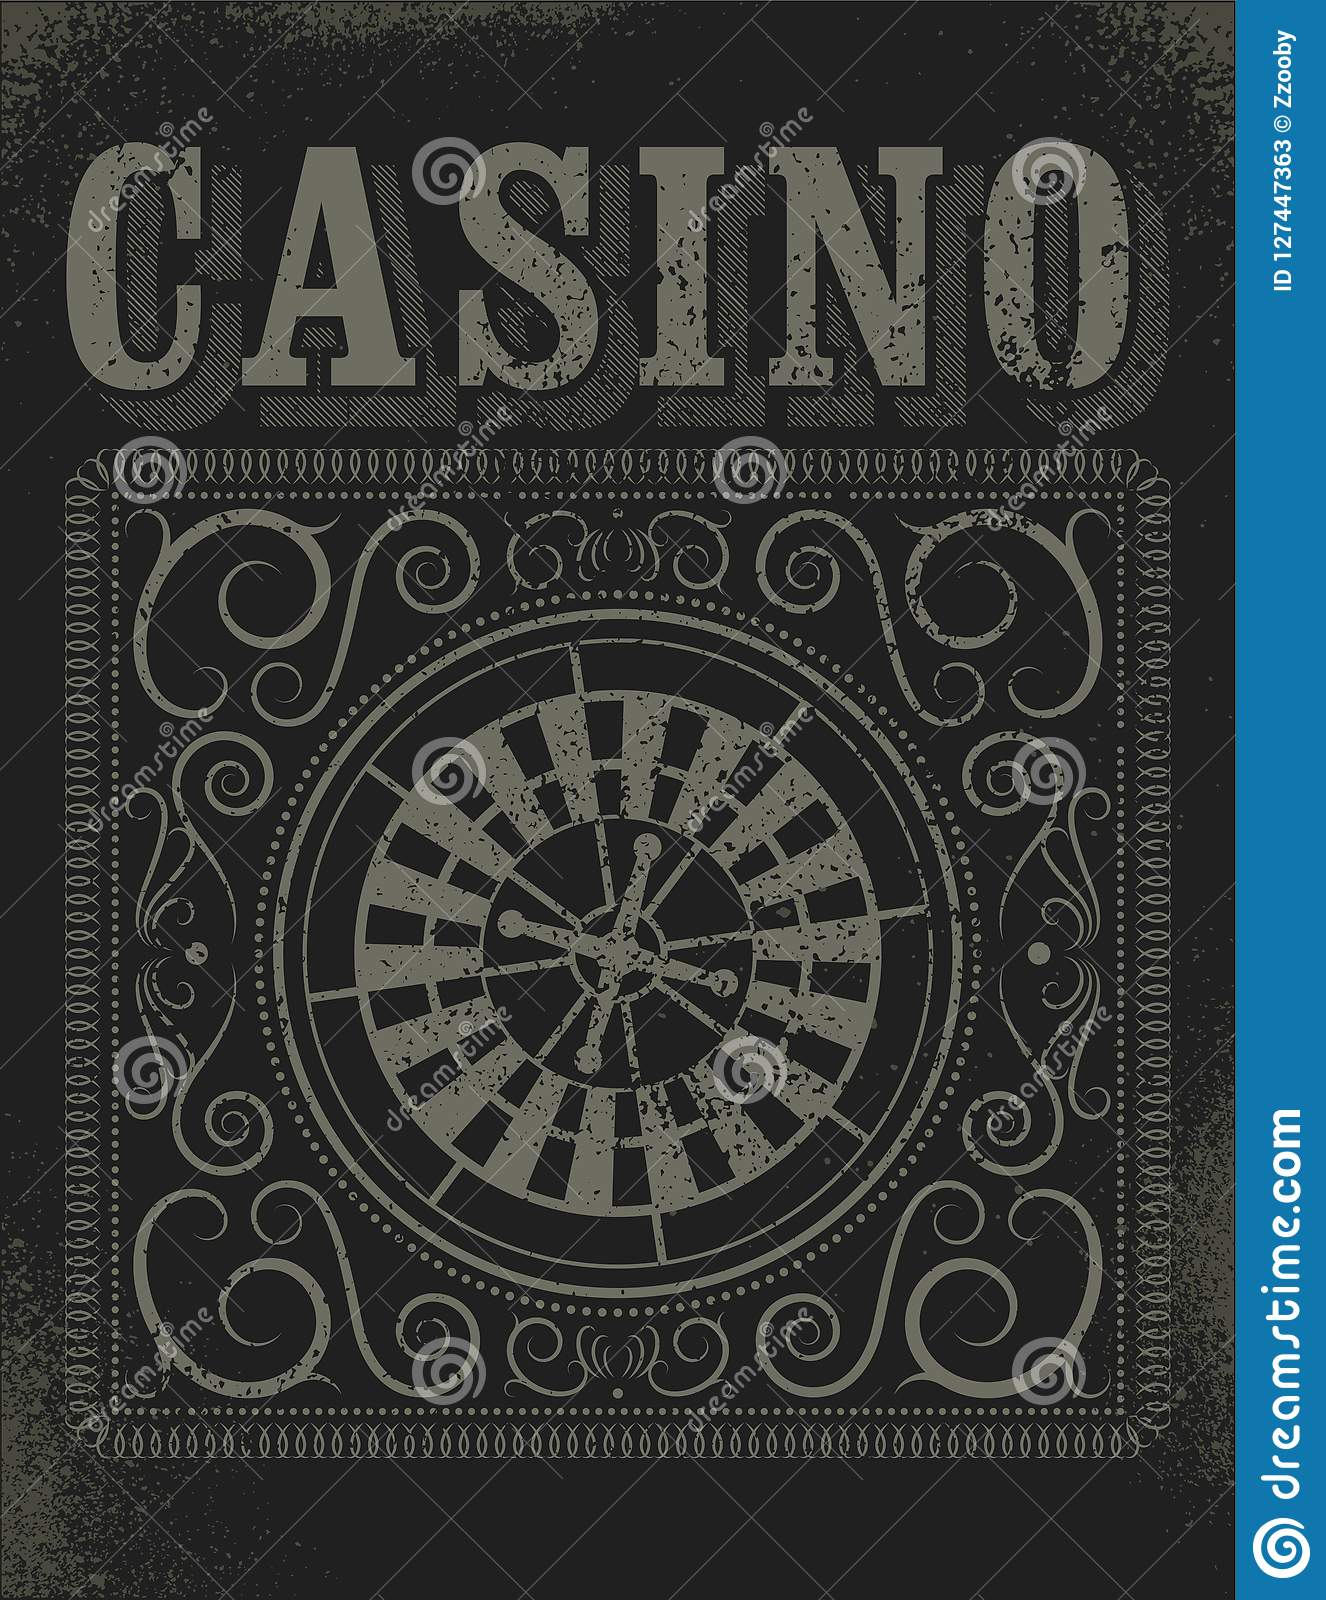 Casino typographical vintage grunge style poster with roulette wheel. Retro vector illustration.